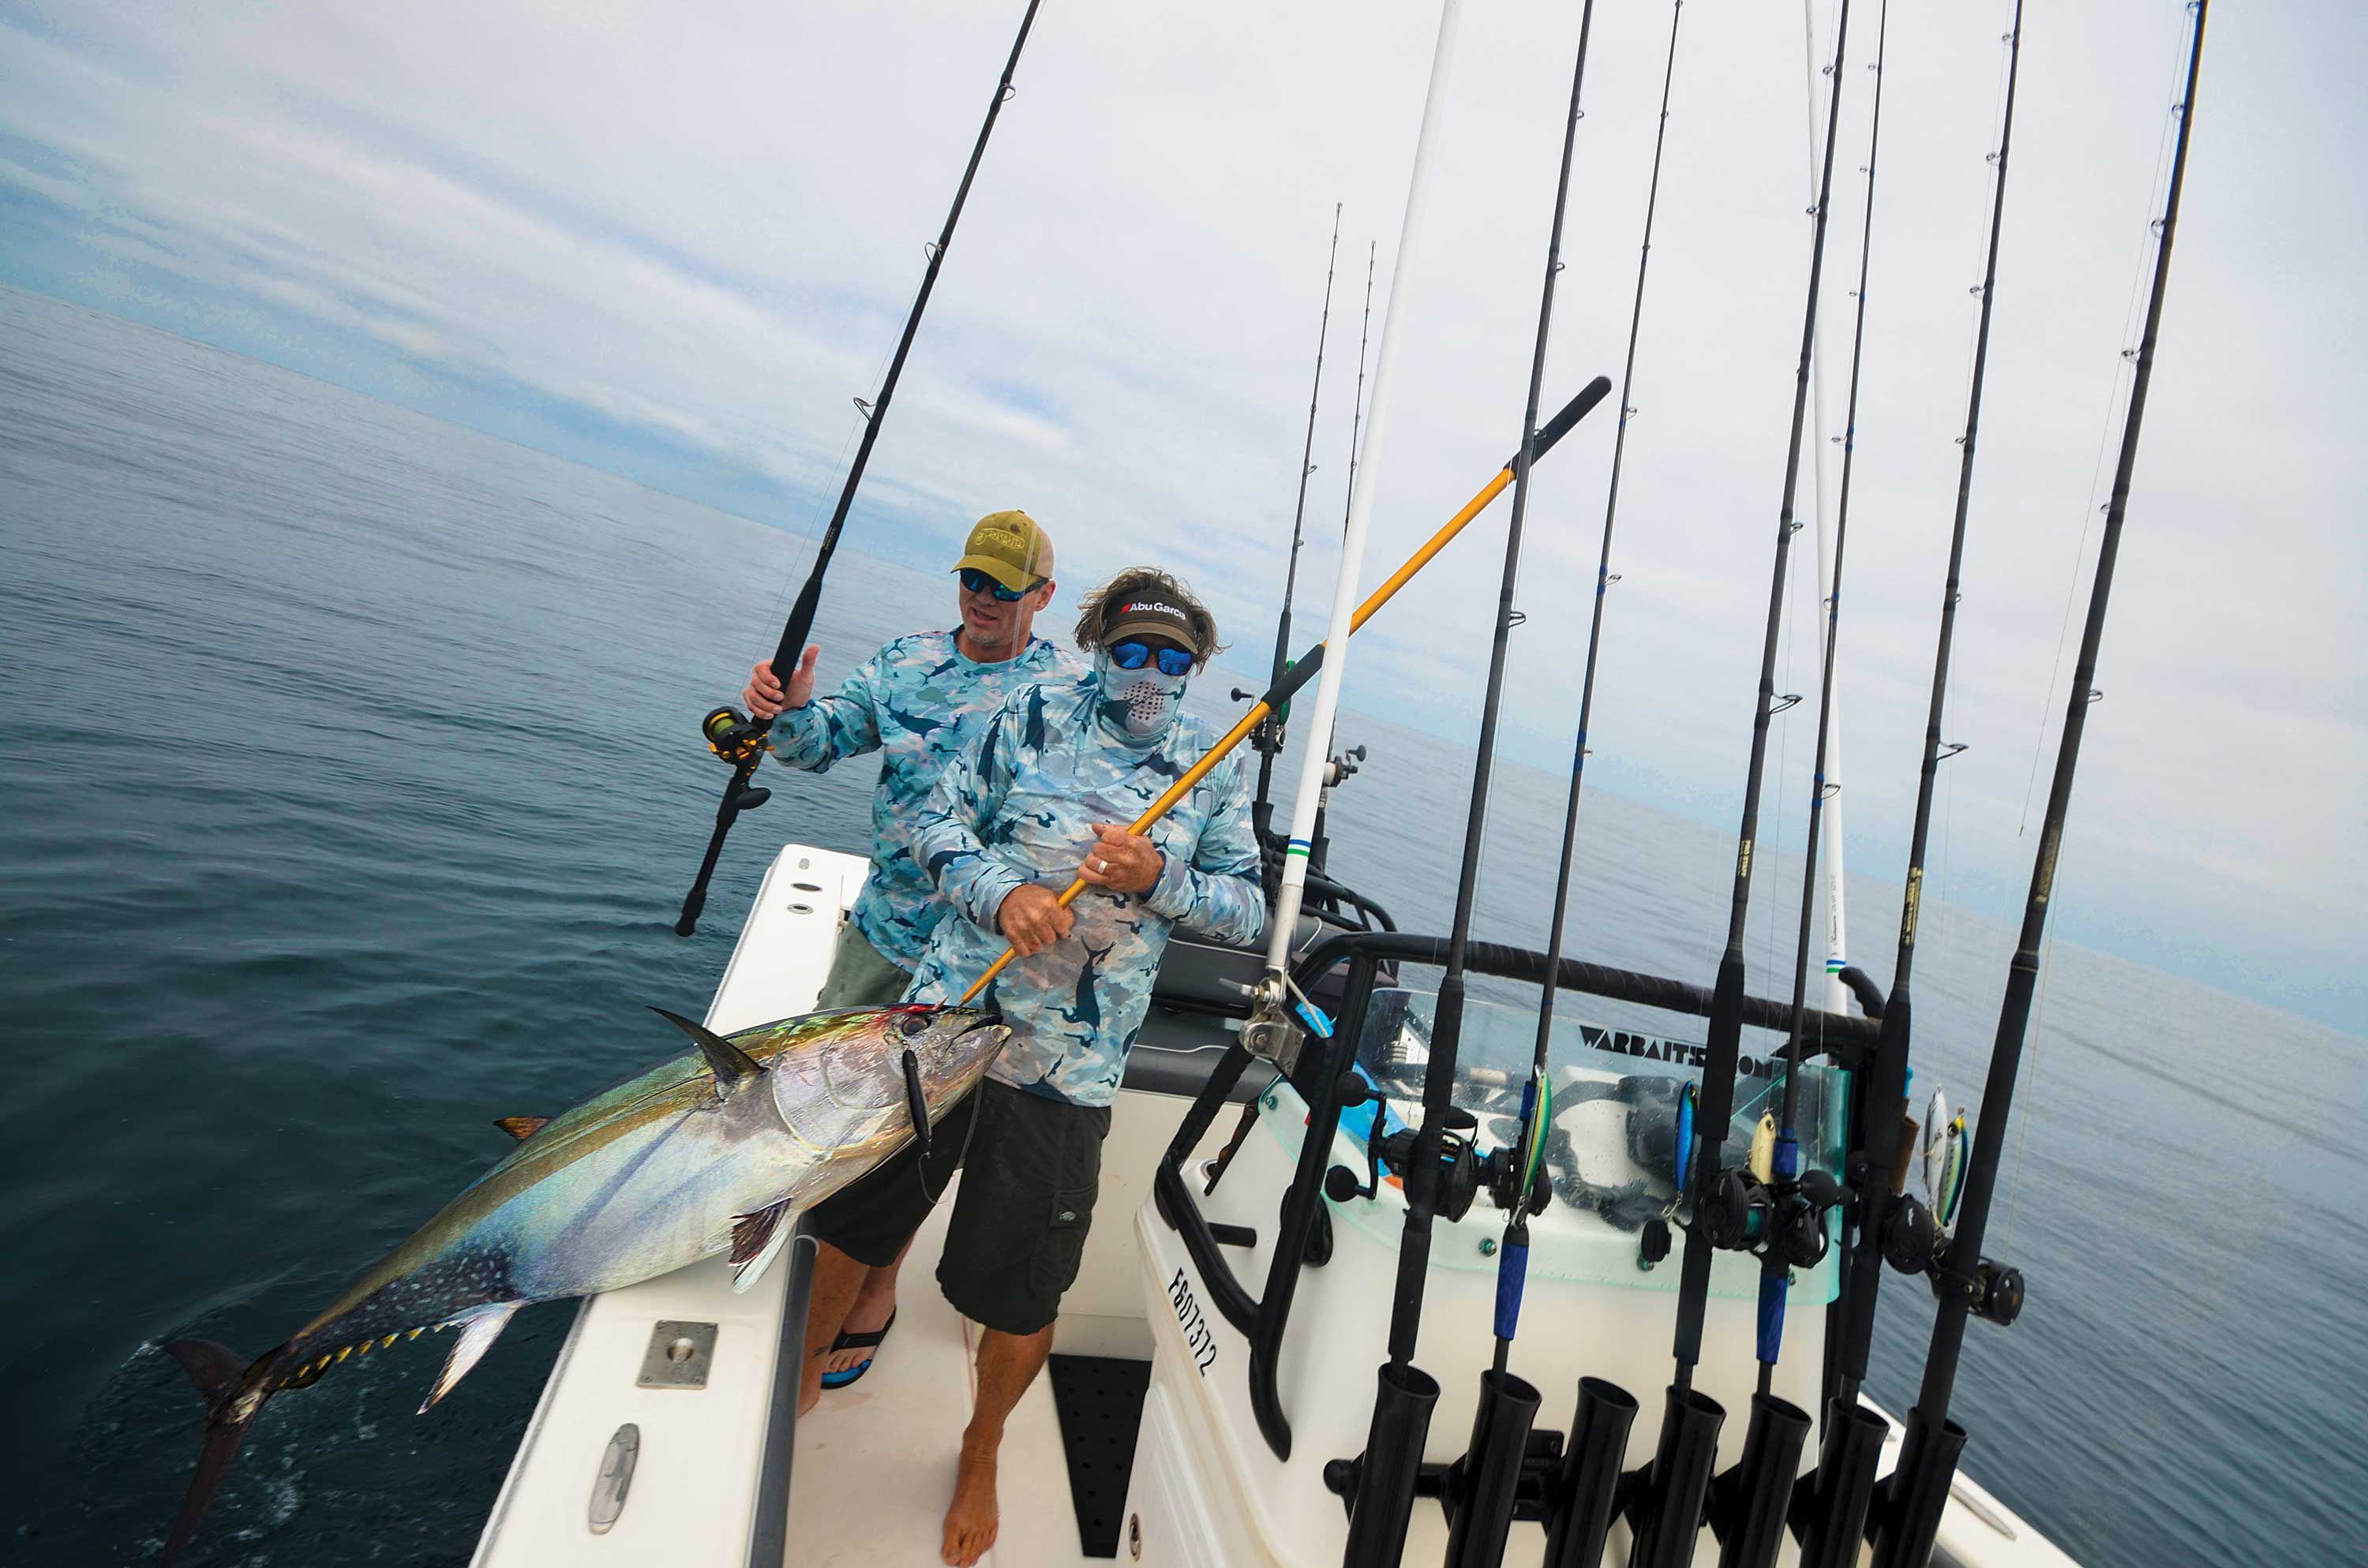 A bluefin tuna comes  aboard, testimony to bay-boat effectiveness offshore.